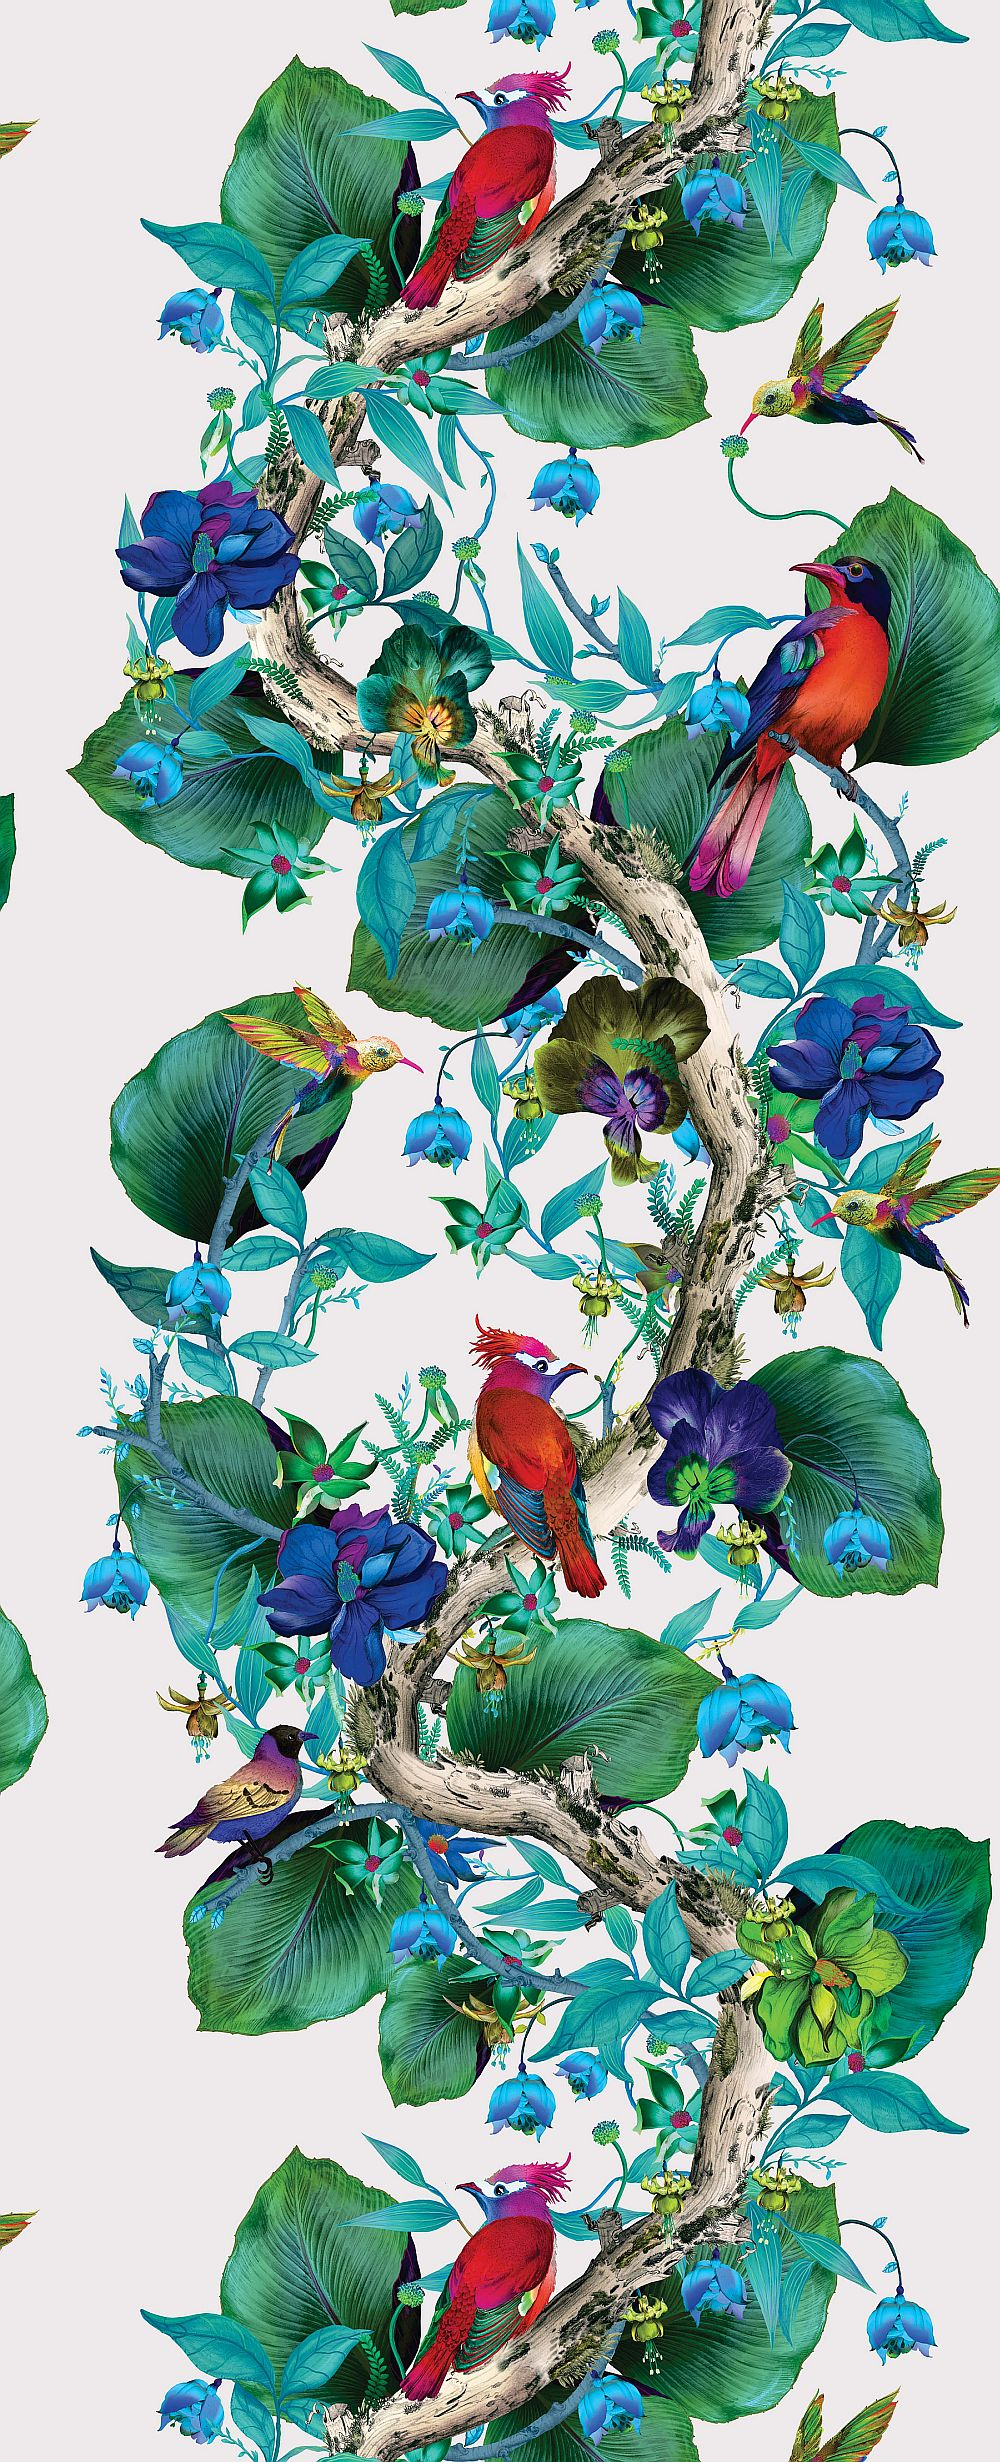 Osborne & Little Rain Forest Emerald / Ruby Wallpaper extra image